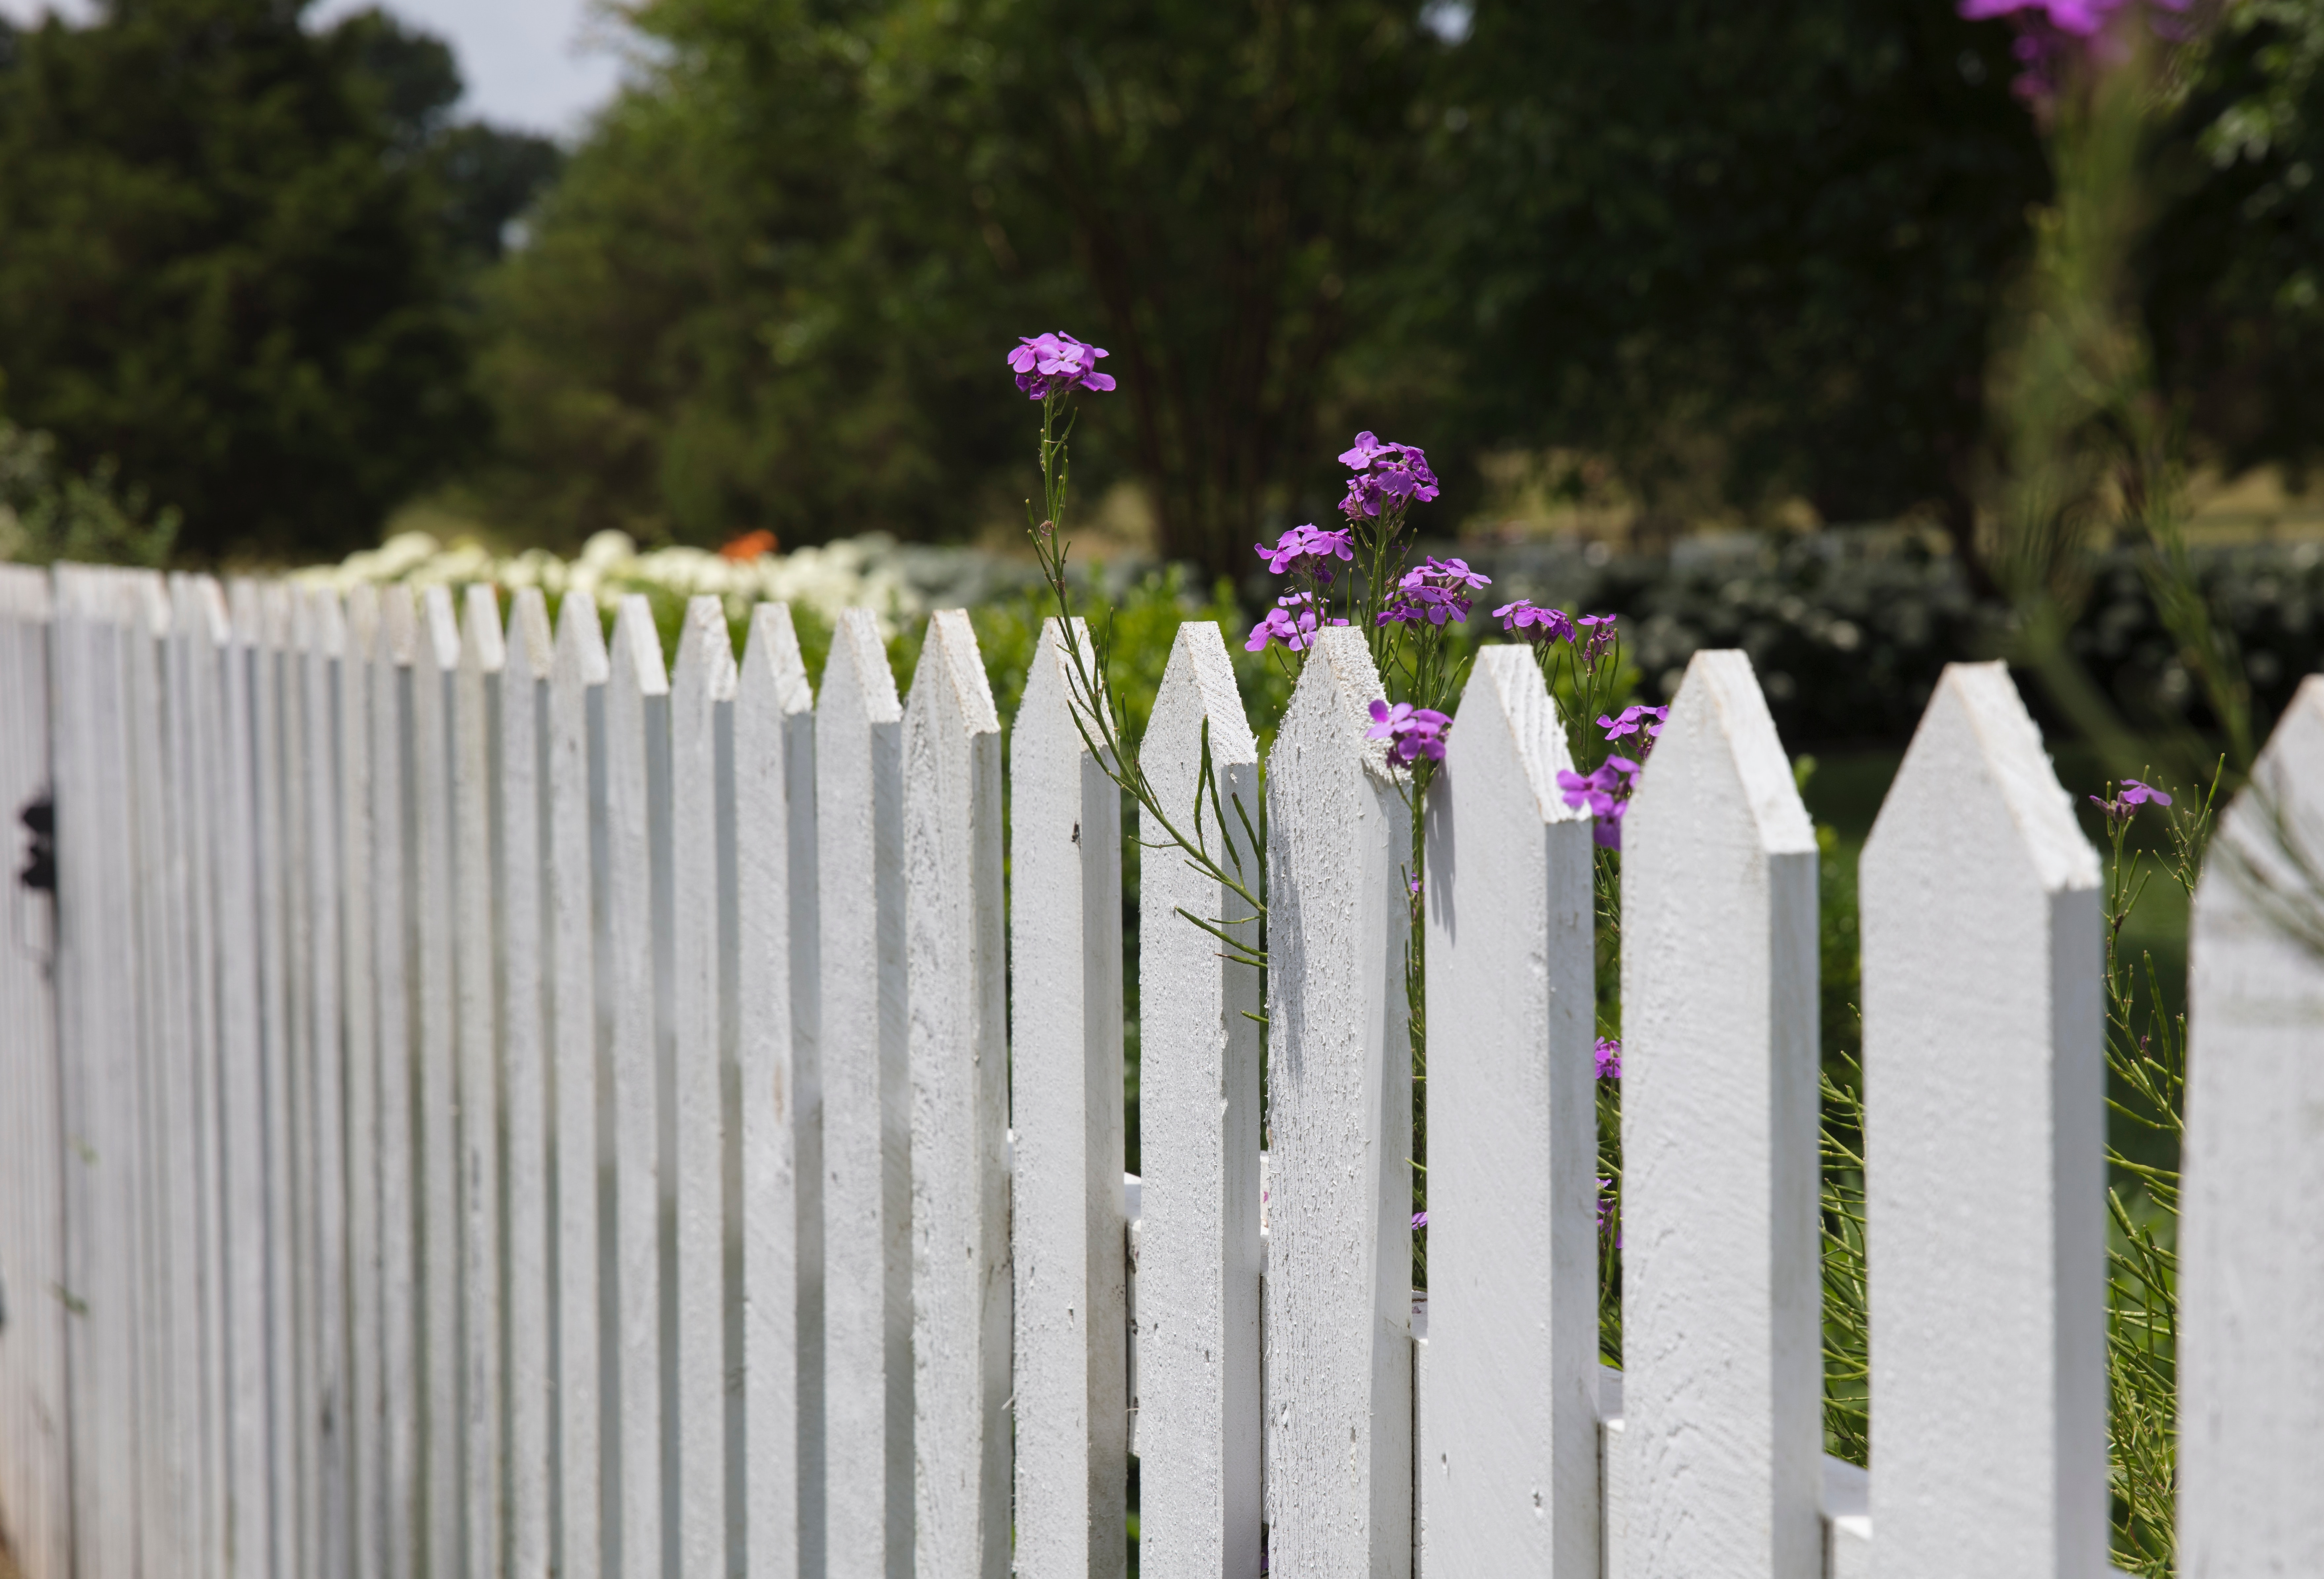 Pink petaled flowers blooms near white, picket fence.